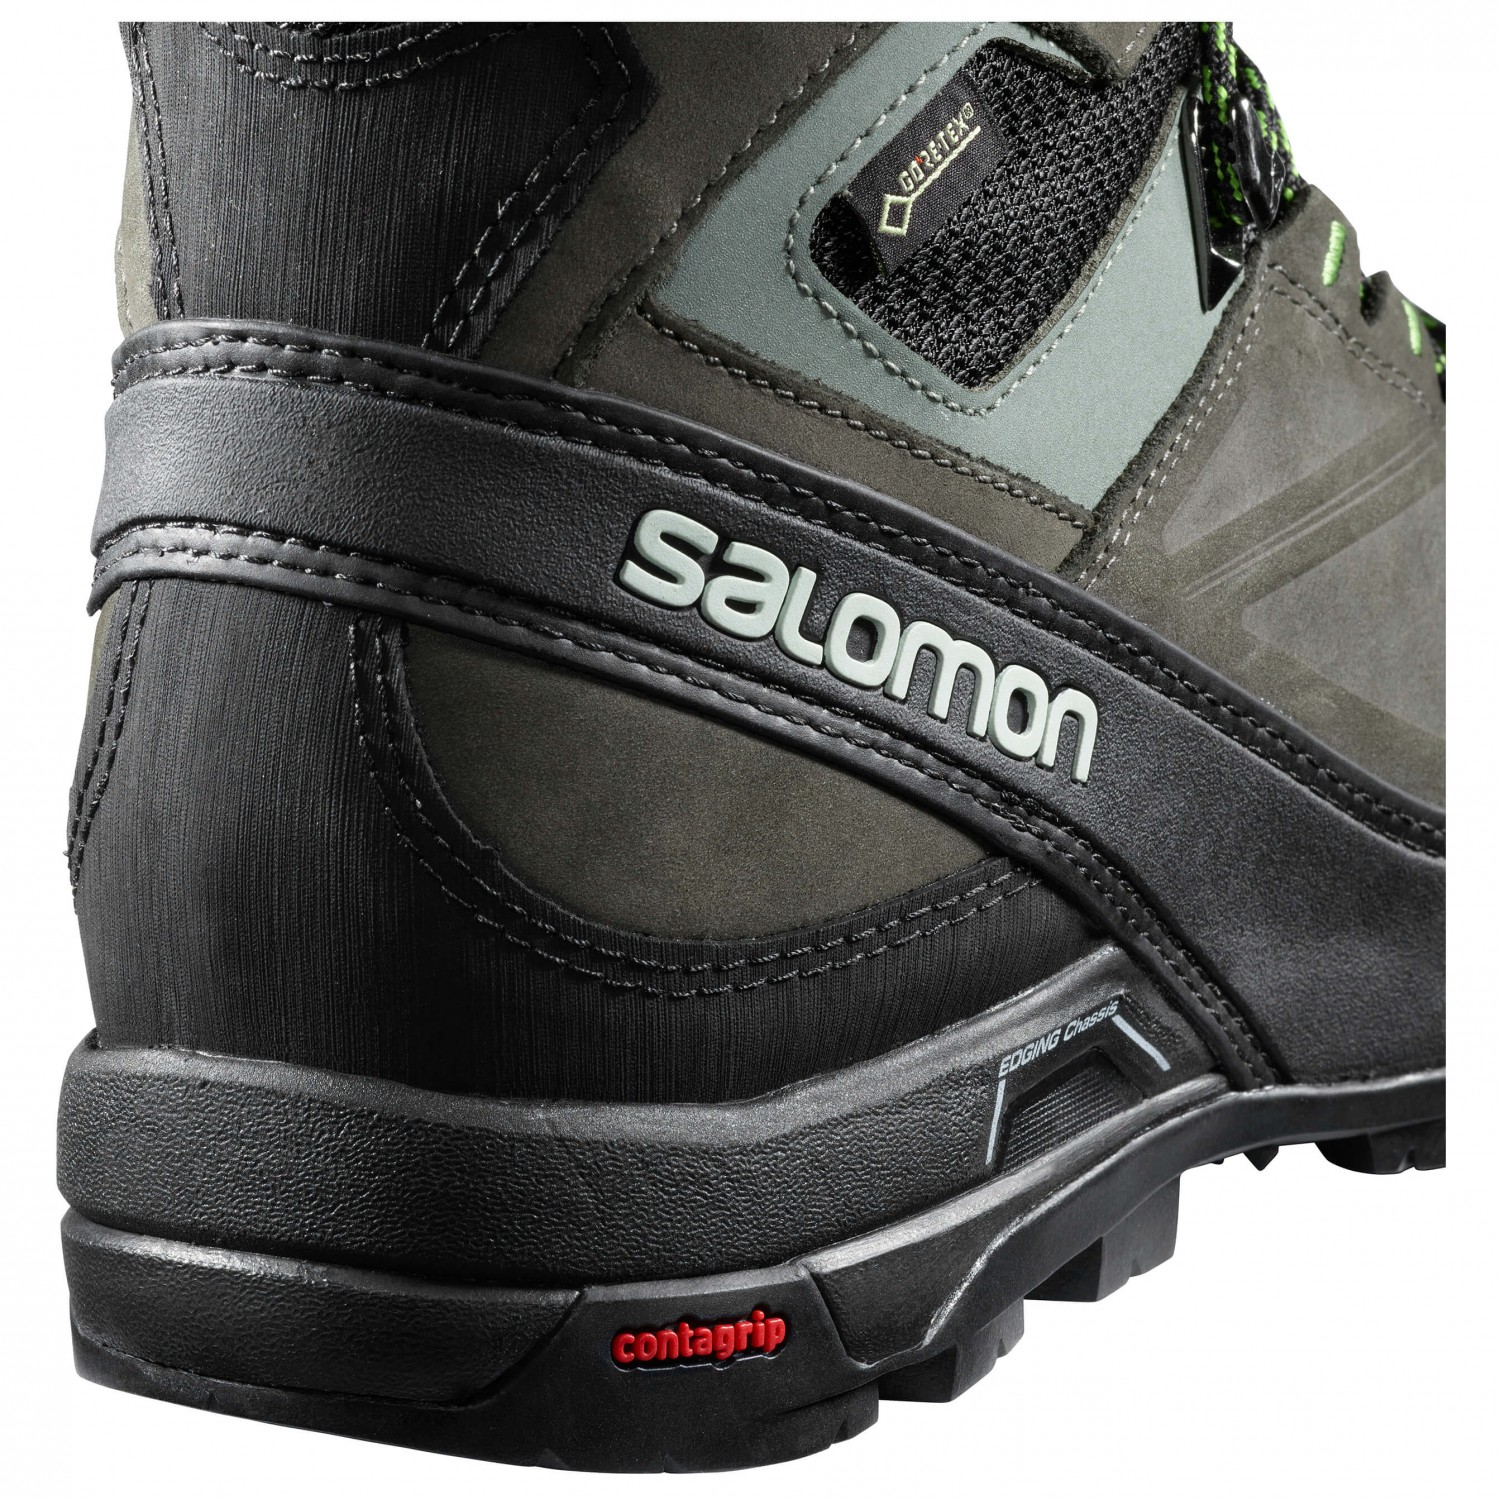 d1f3f002133 Salomon X Alp Mtn Gtx - Mountaineering Boots Men's | Buy online ...